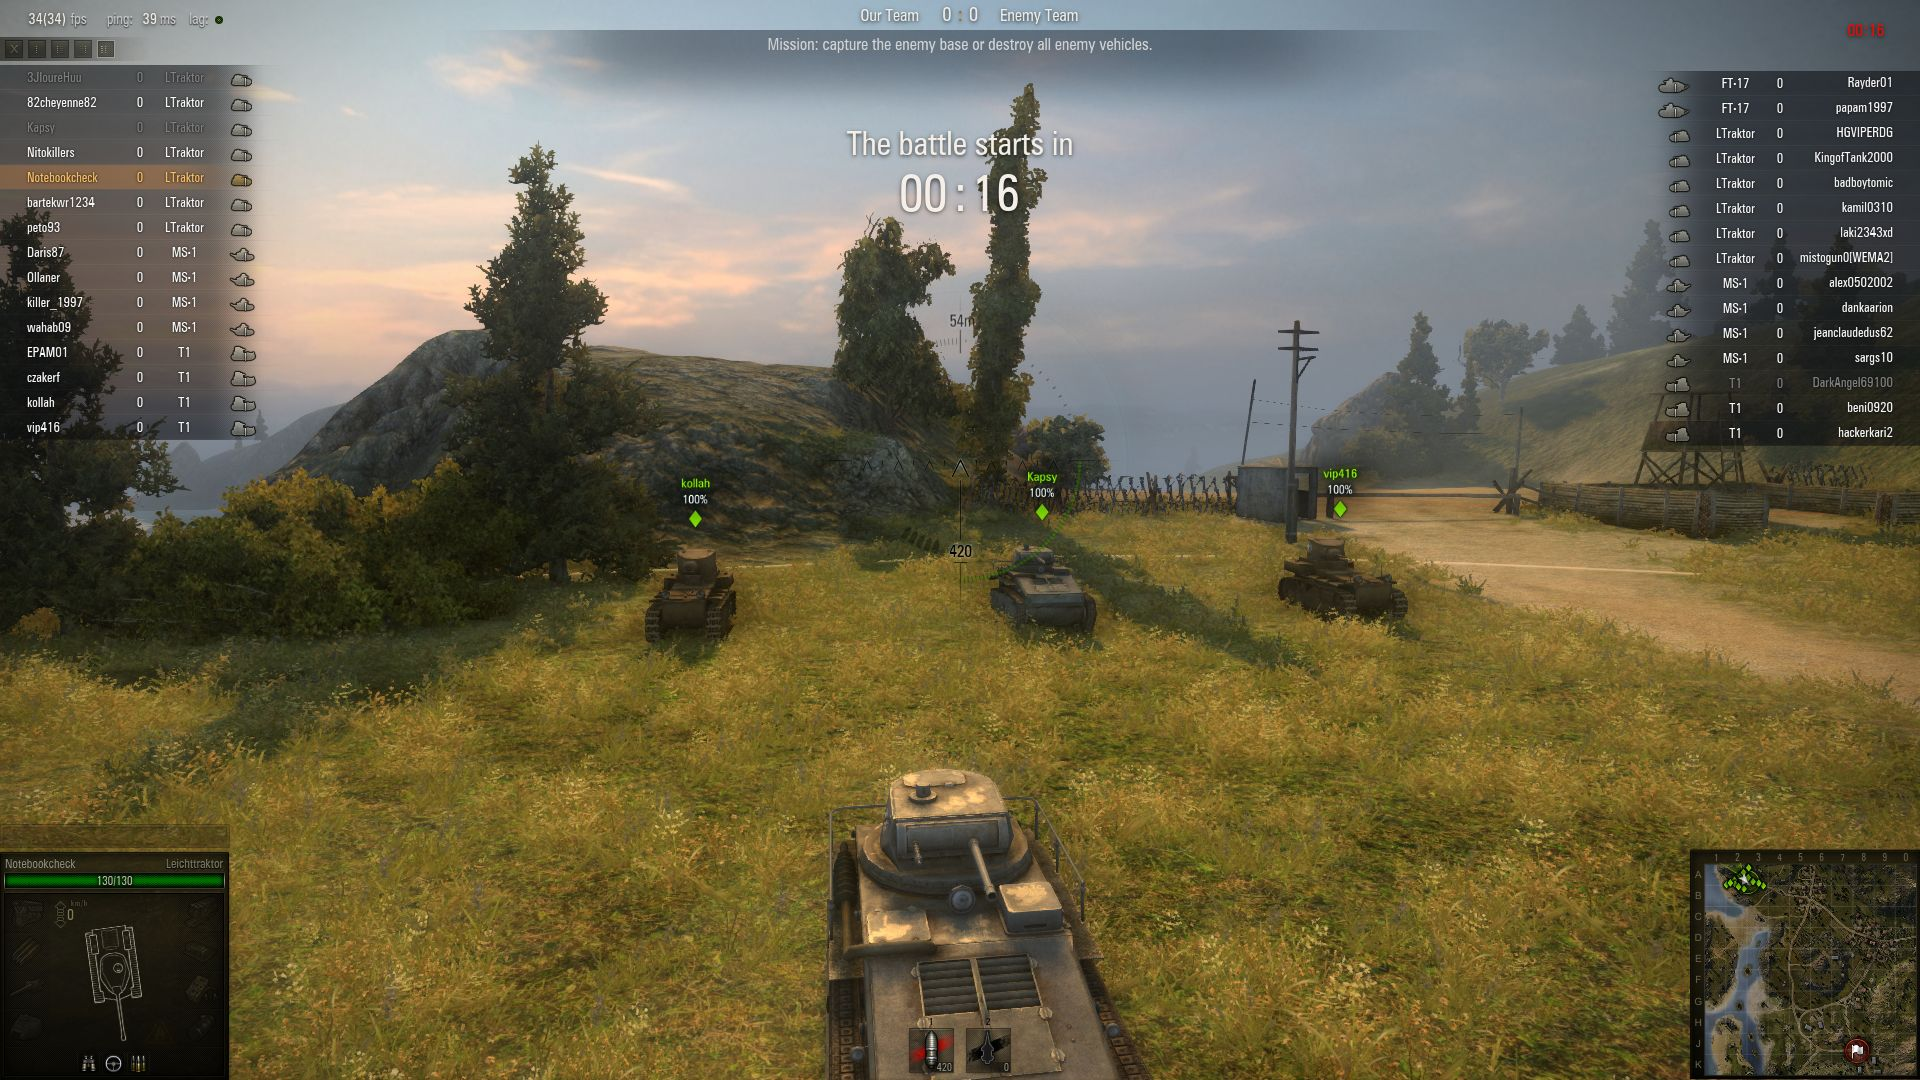 World of Tanks v8 0 Benchmarked - NotebookCheck net Reviews